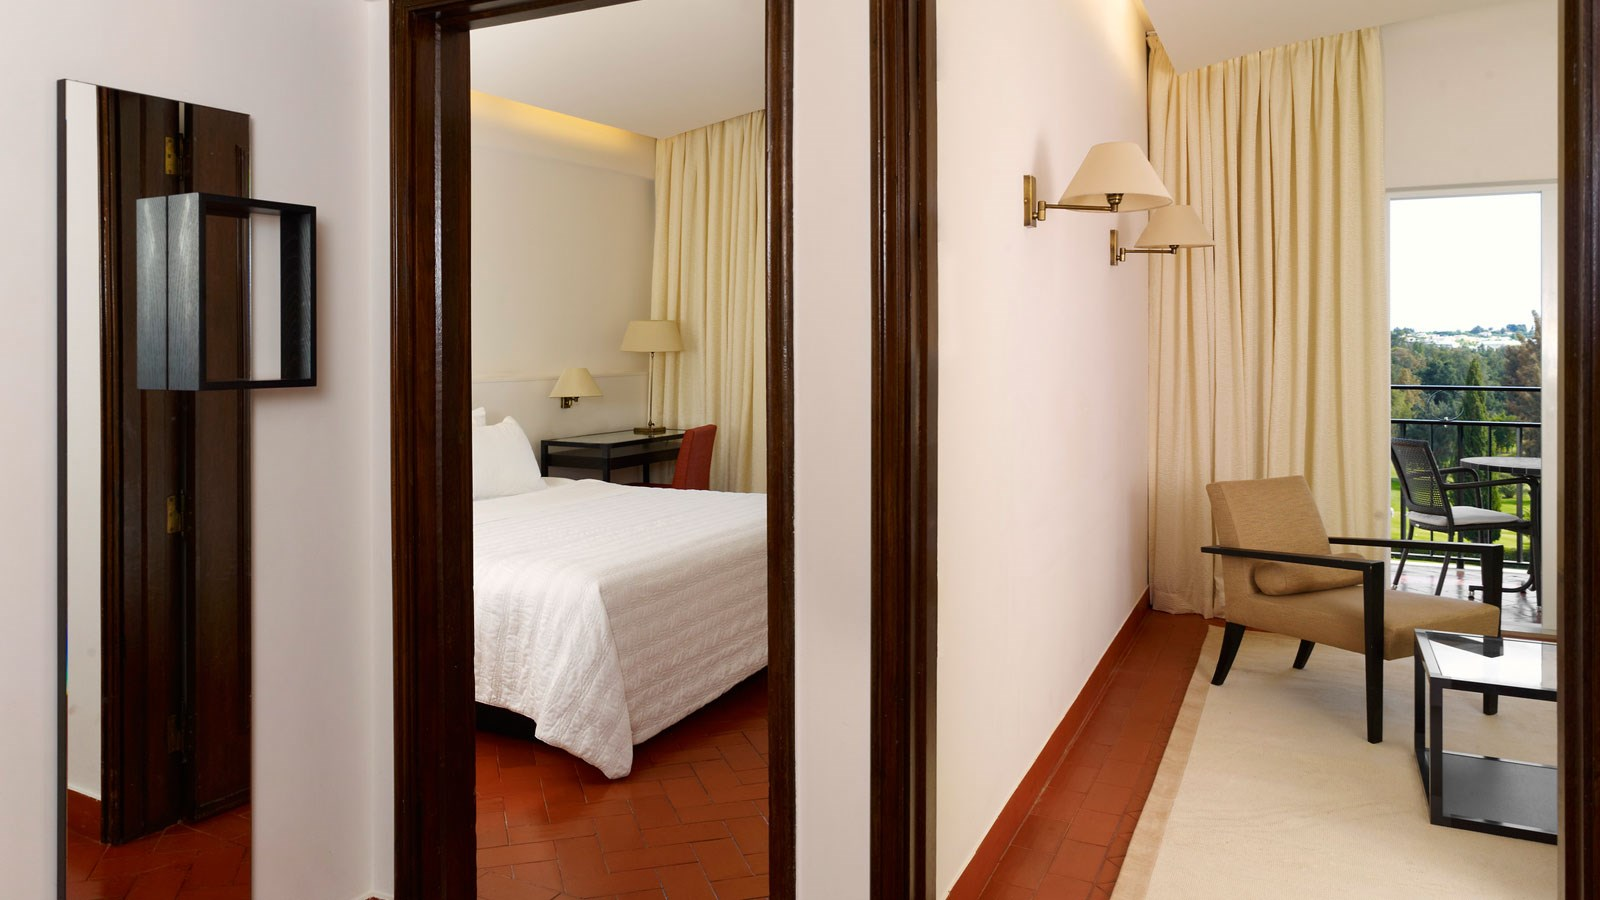 Junior Suite at Penina Hotel and Golf Resort